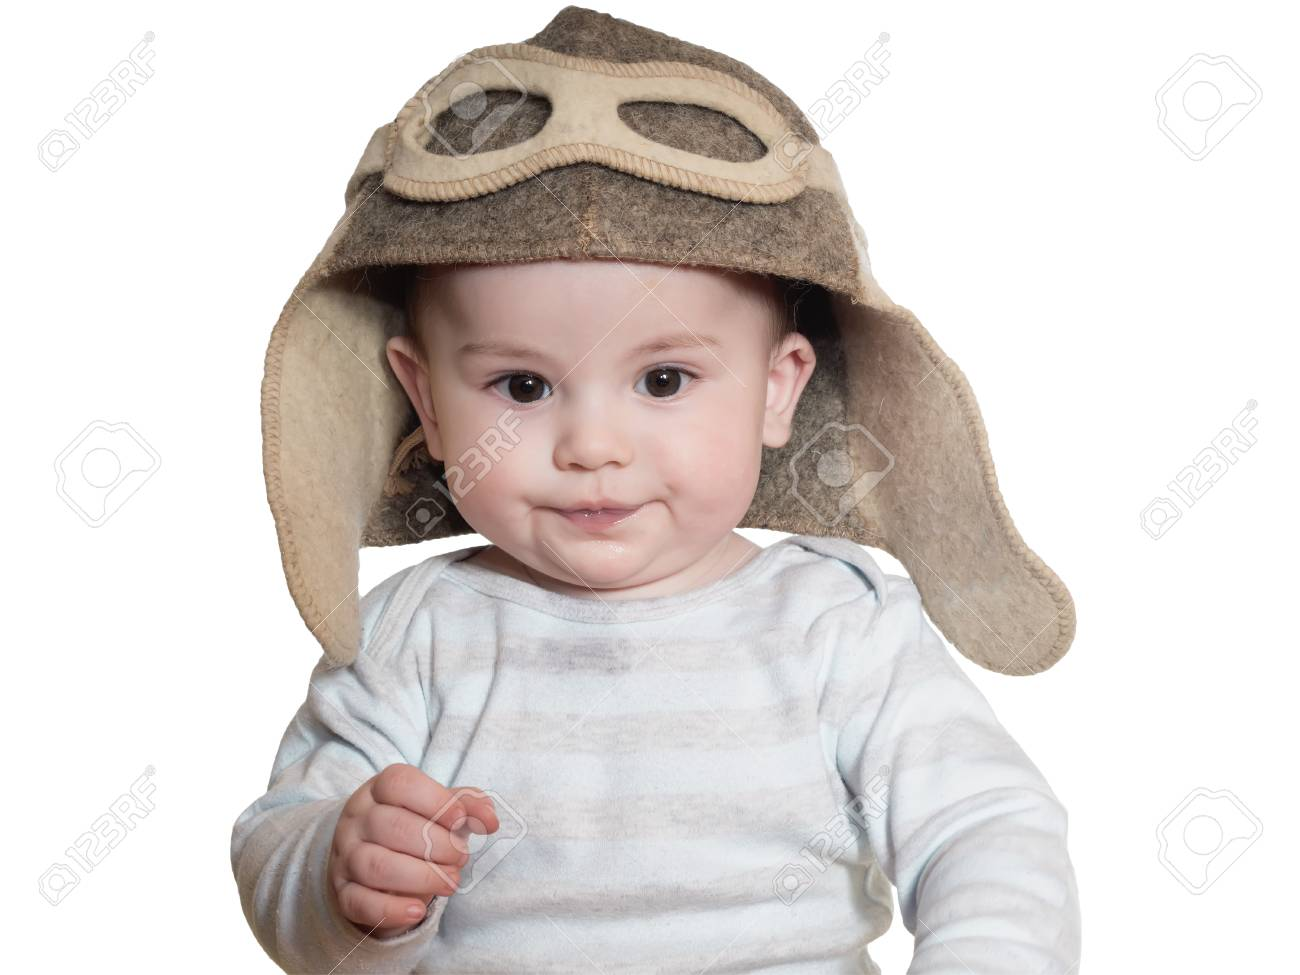 Caucasian baby boy in pilot hat isolated on white Stock Photo - 37737758 f062d276940